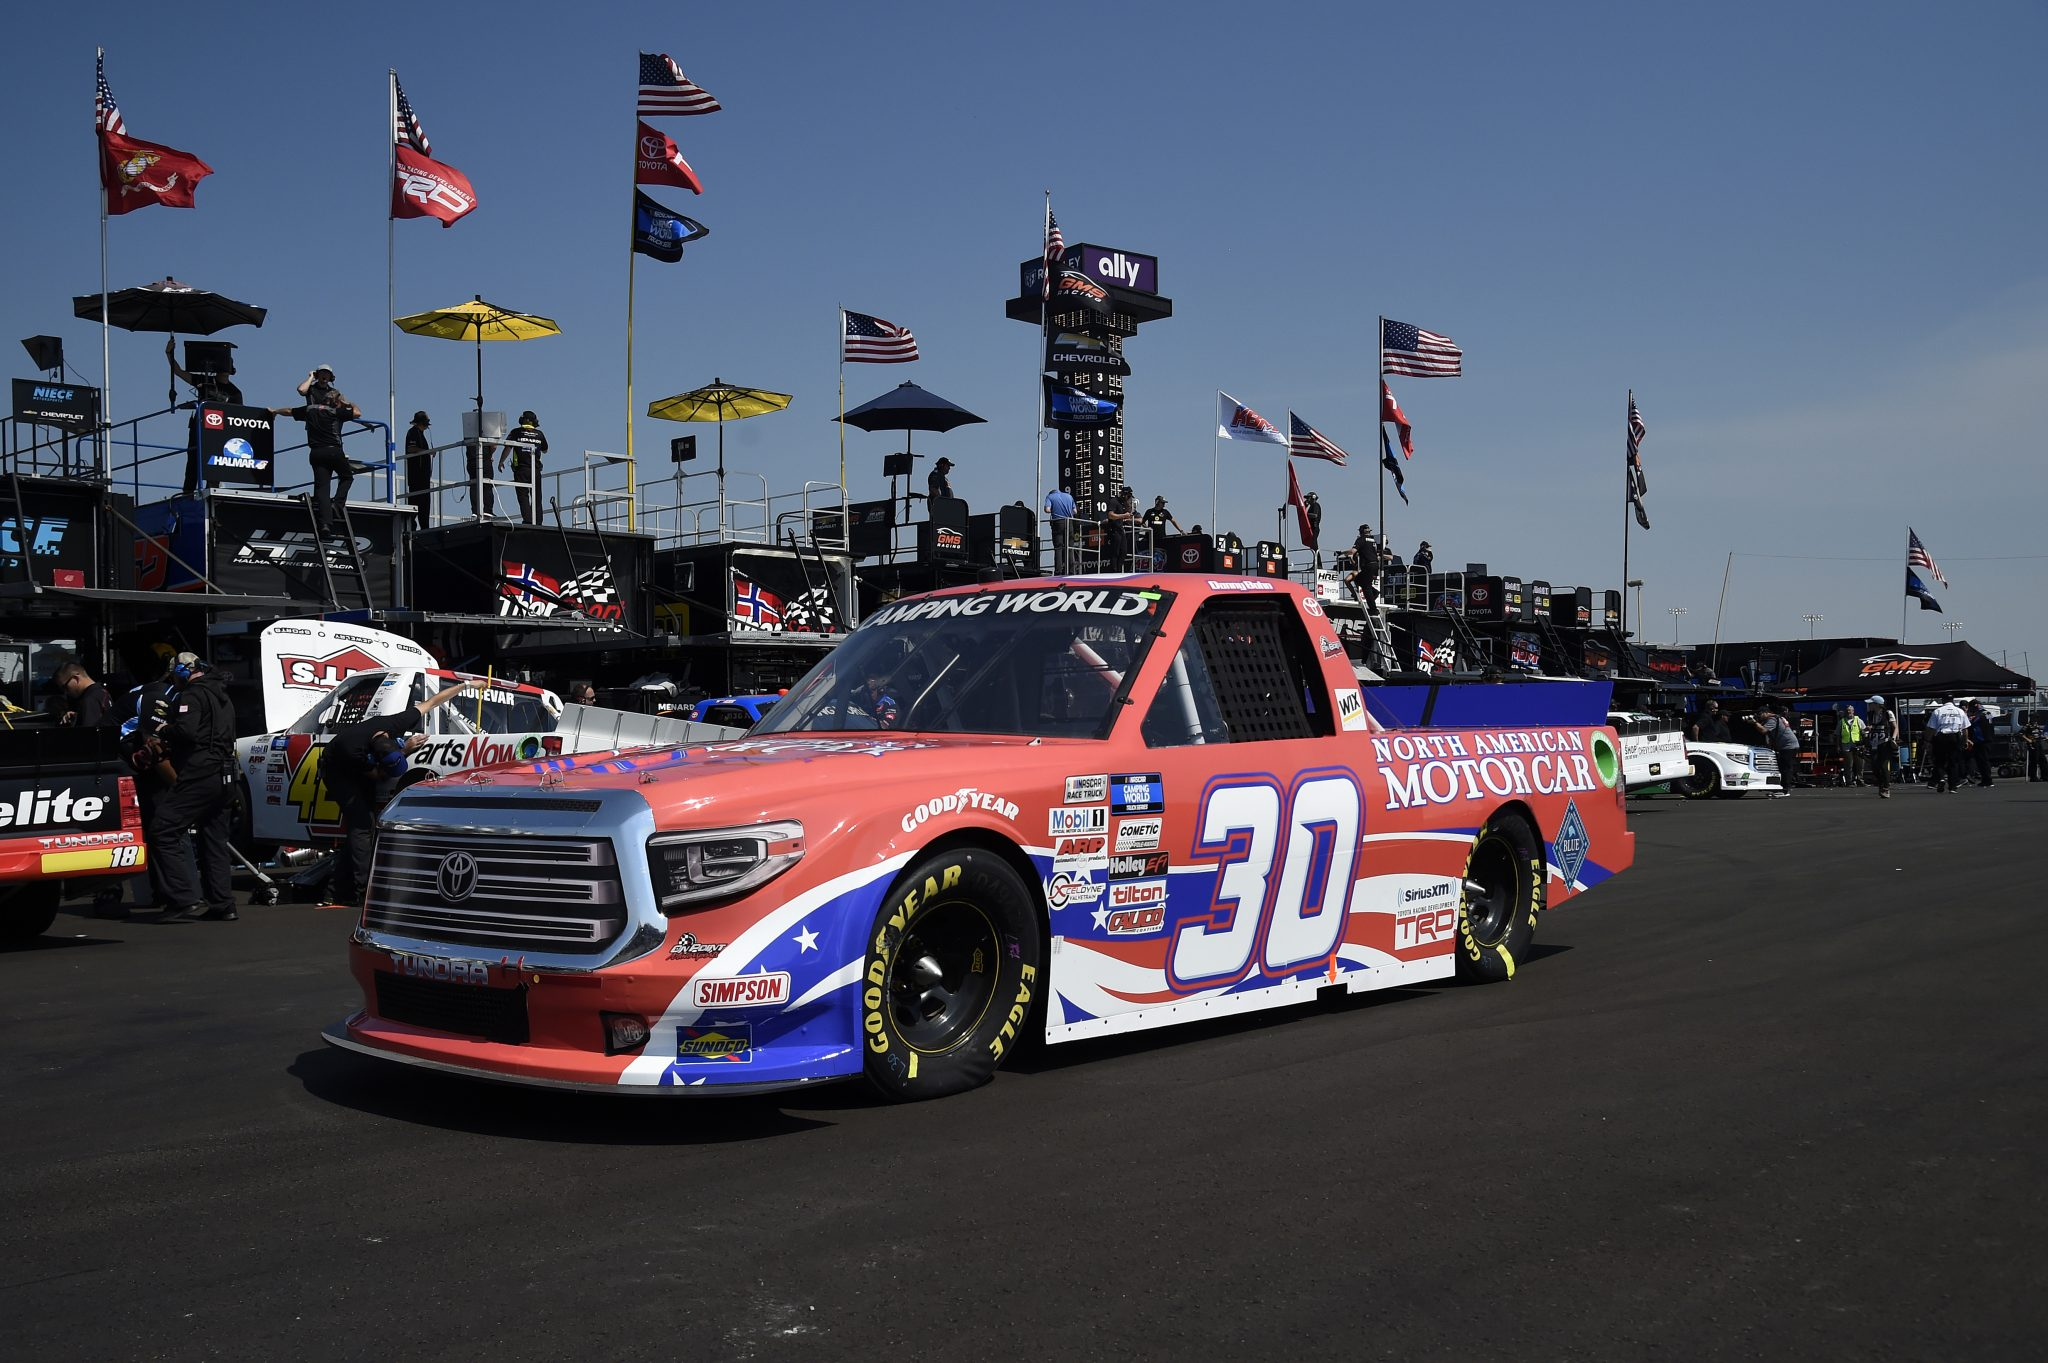 LEBANON, TENNESSEE - JUNE 18: Danny Bohn, driver of the #30 North American Motor Car Toyota, drives in the garage area during practice for the NASCAR Camping World Truck Series Rackley Roofing 200 at Nashville Superspeedway on June 18, 2021 in Lebanon, Tennessee. (Photo by Logan Riely/Getty Images) | Getty Images